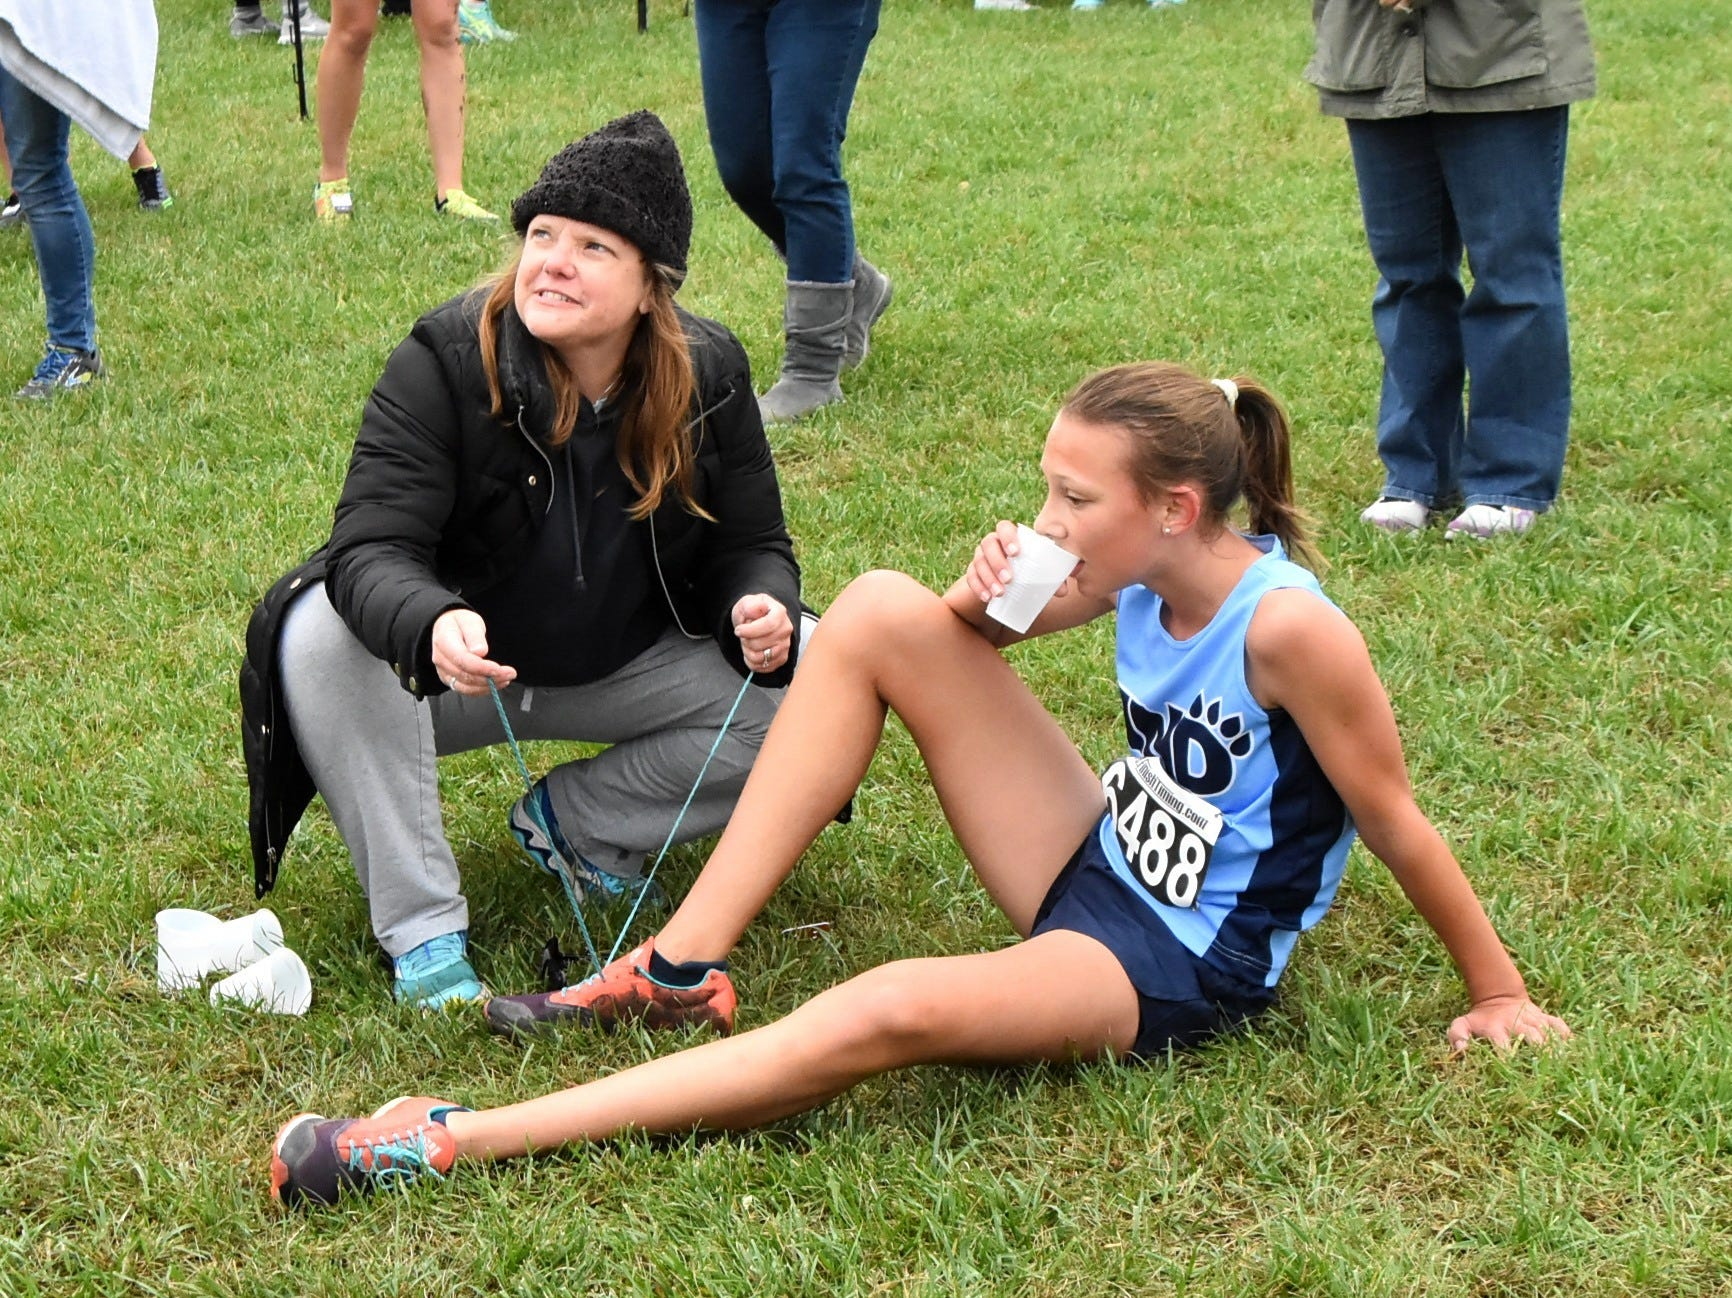 Mt. Notre Dame's Elle Seeger grabs a cold cup of water after finishing 6th at the 2018 GCL/GGCL Cross Country Championships, October 13, 2018.